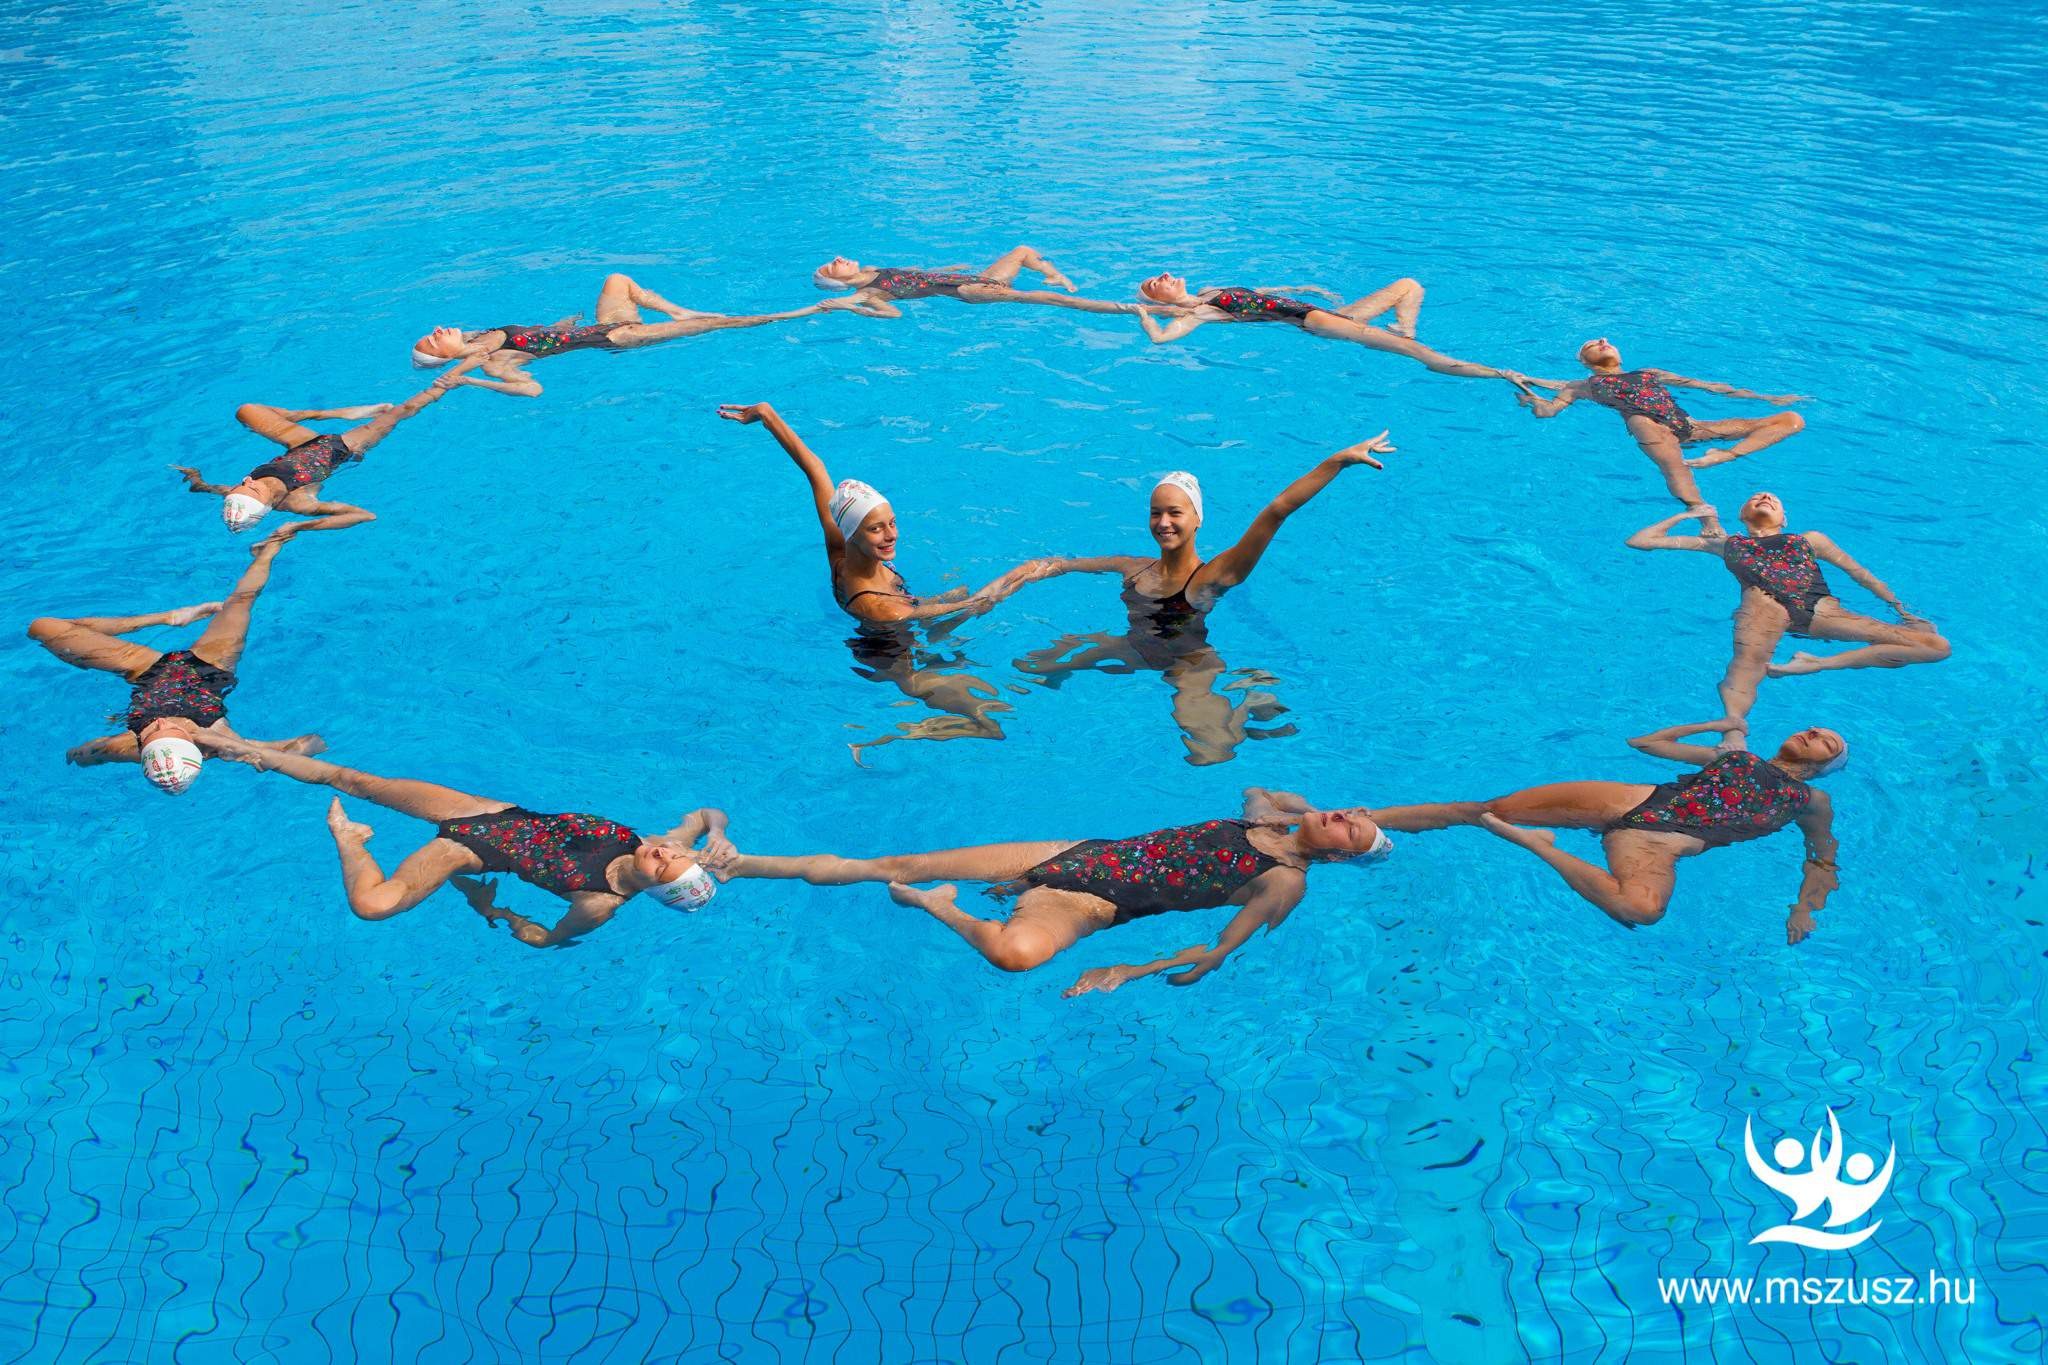 synchronised artistic swimming